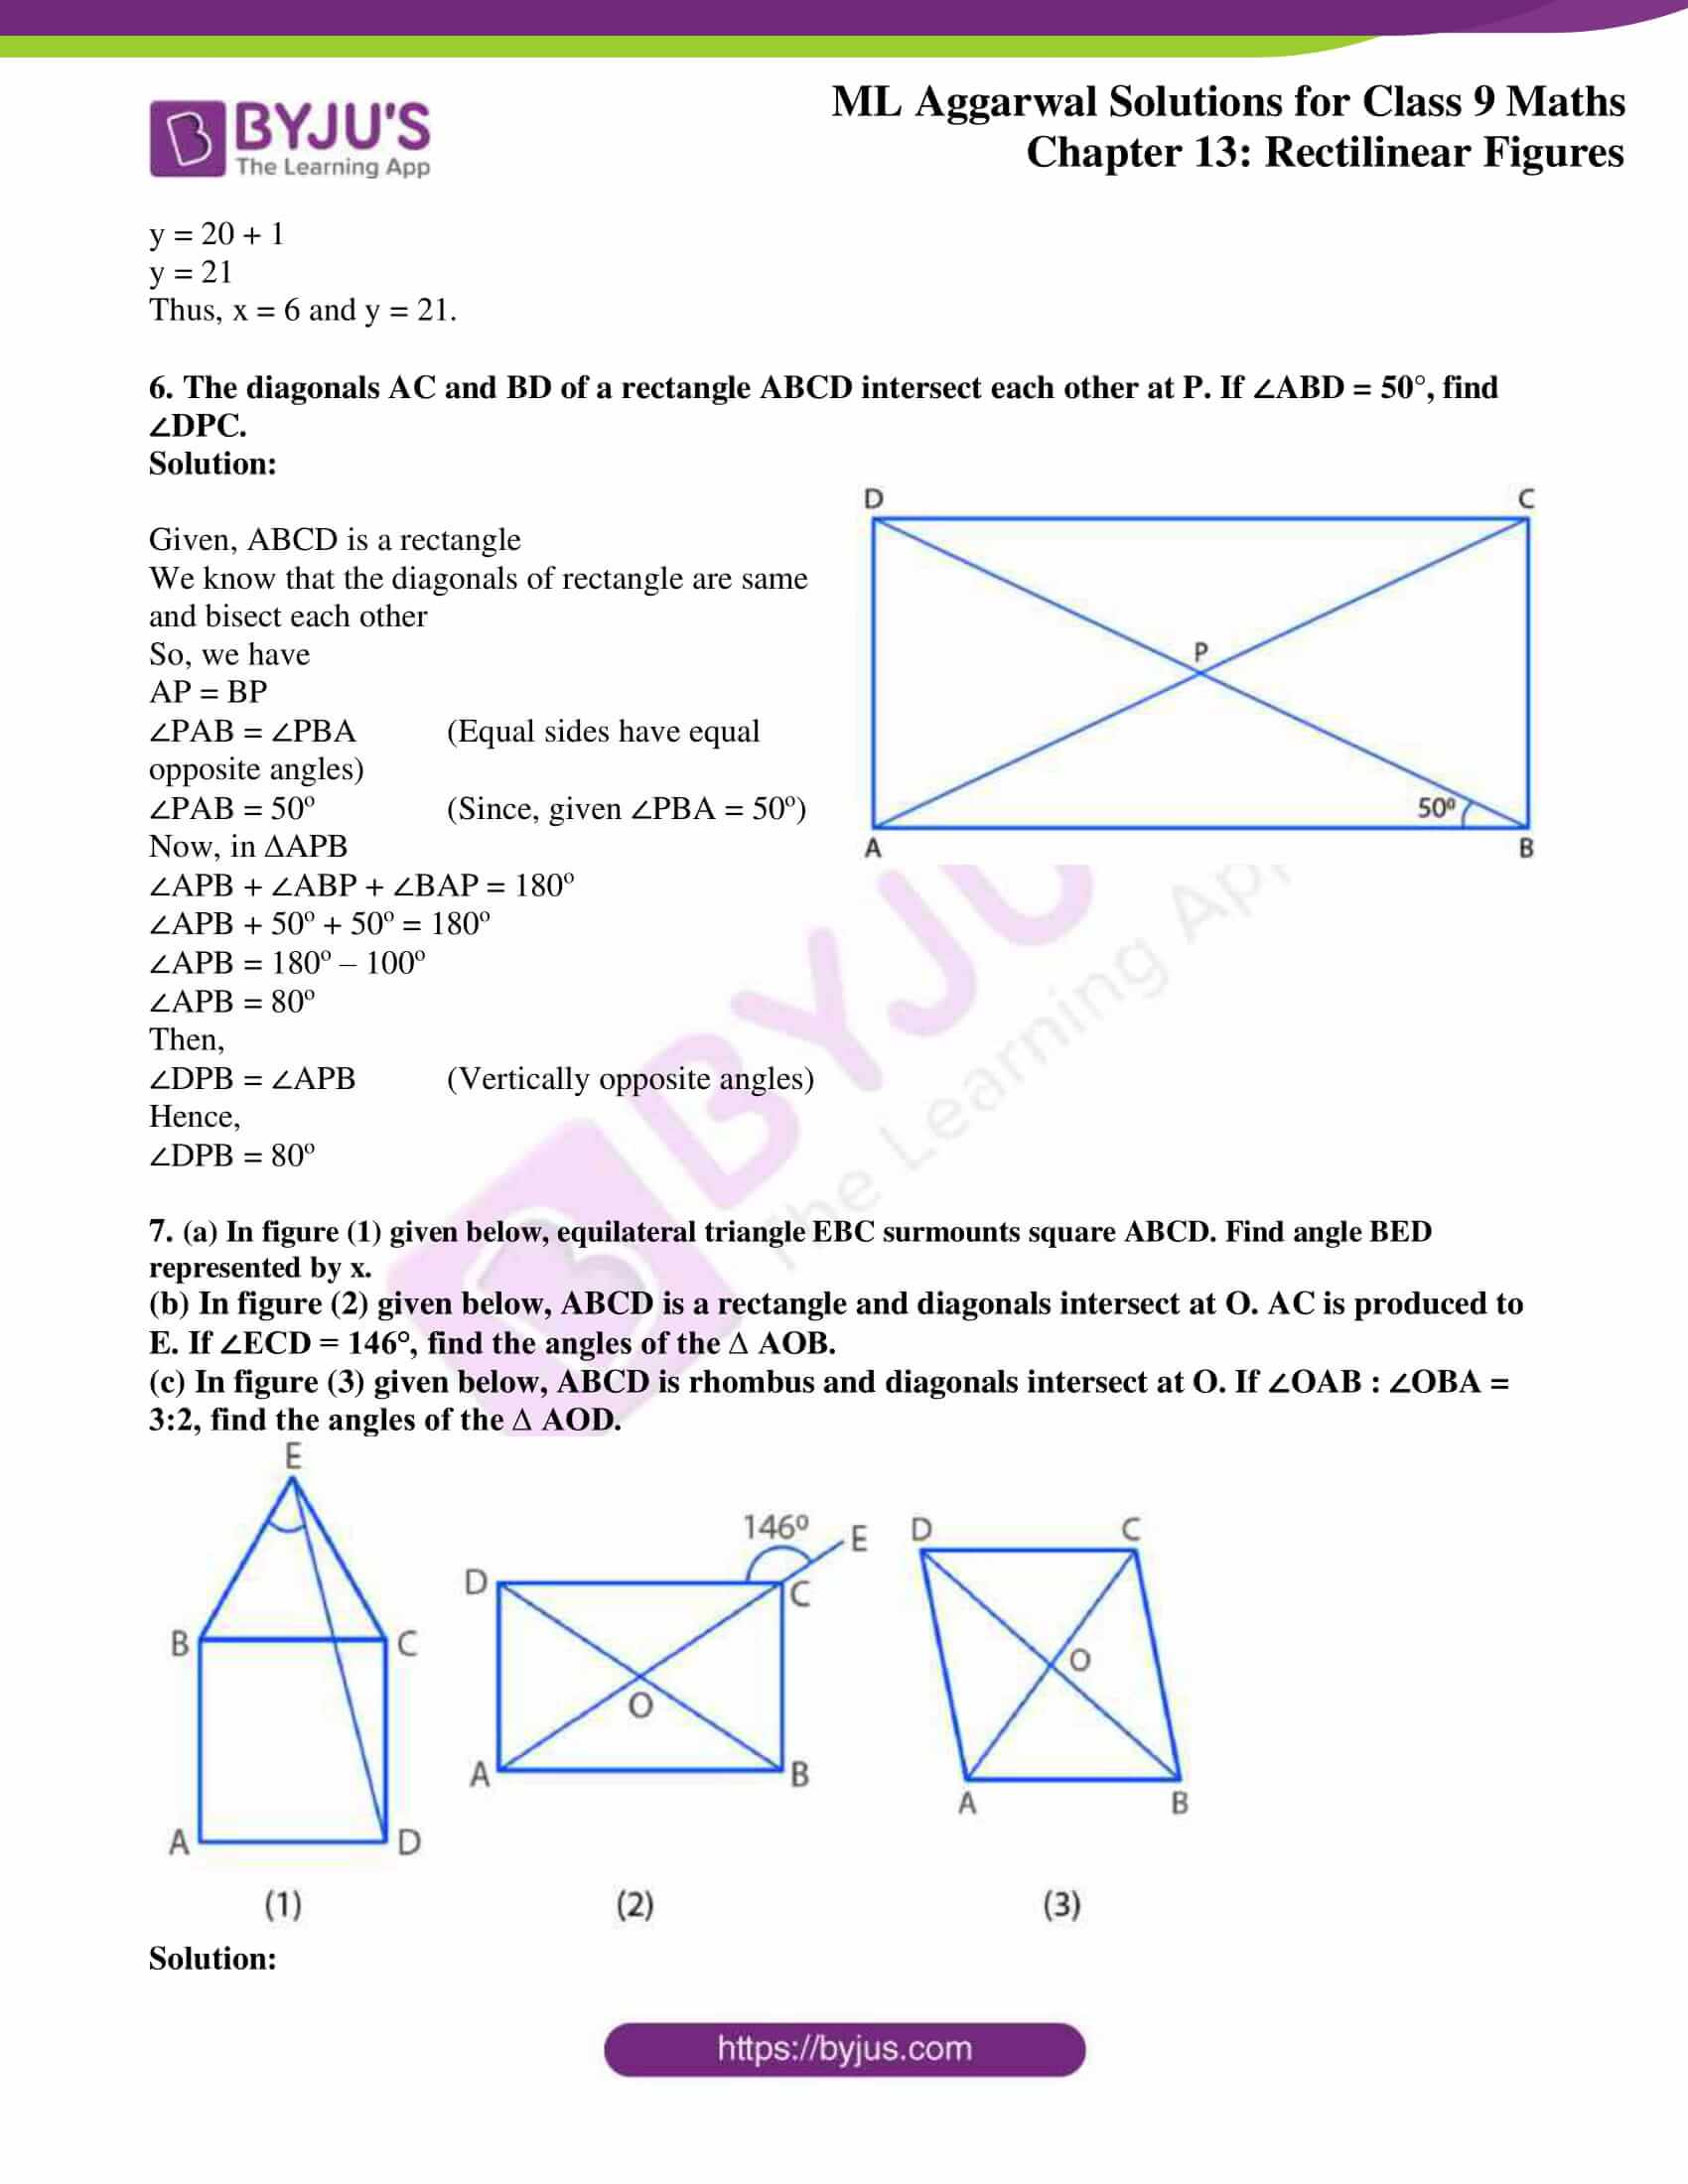 ml aggarwal solutions for class 9 maths chapter 13 05